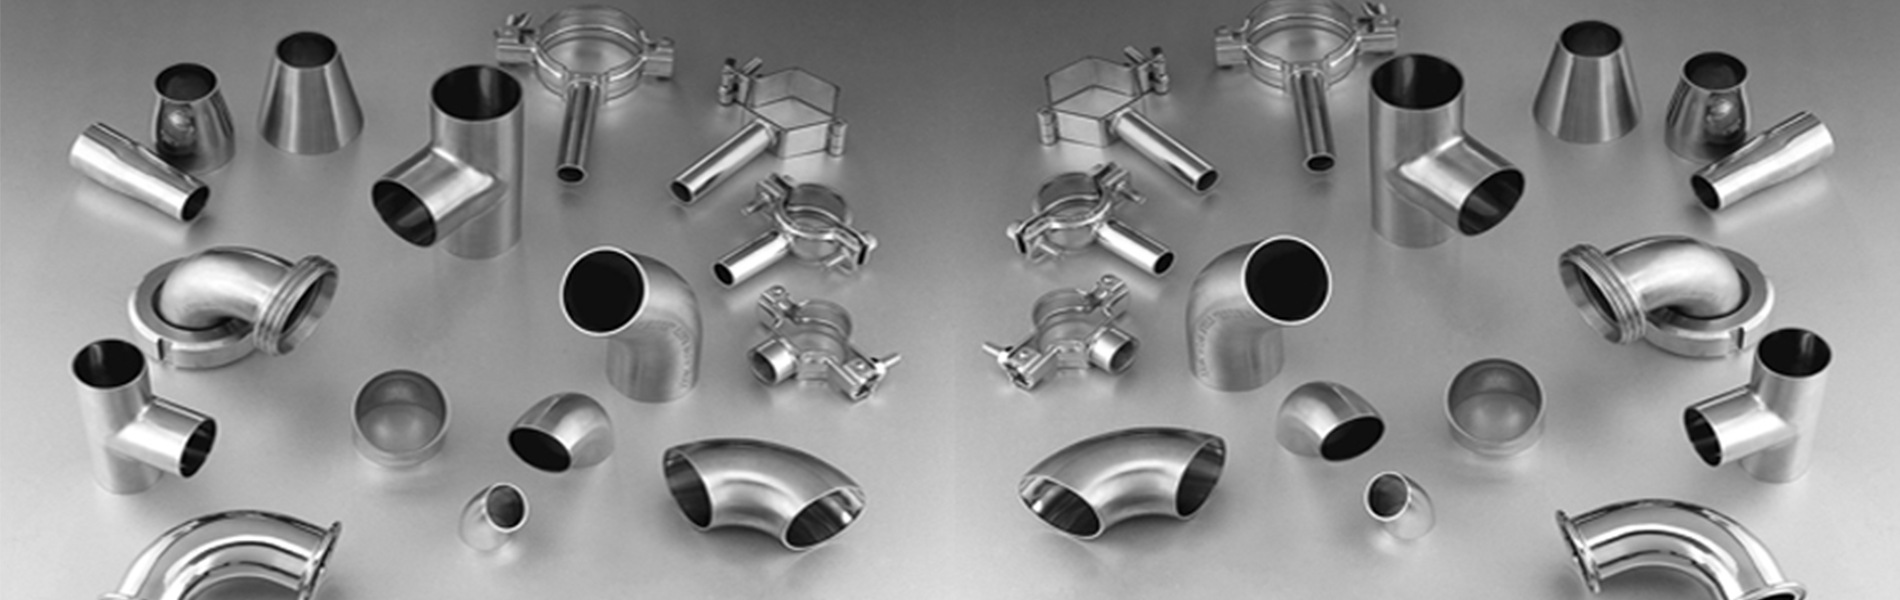 Stainless steel pipe fittings manufacturers ss